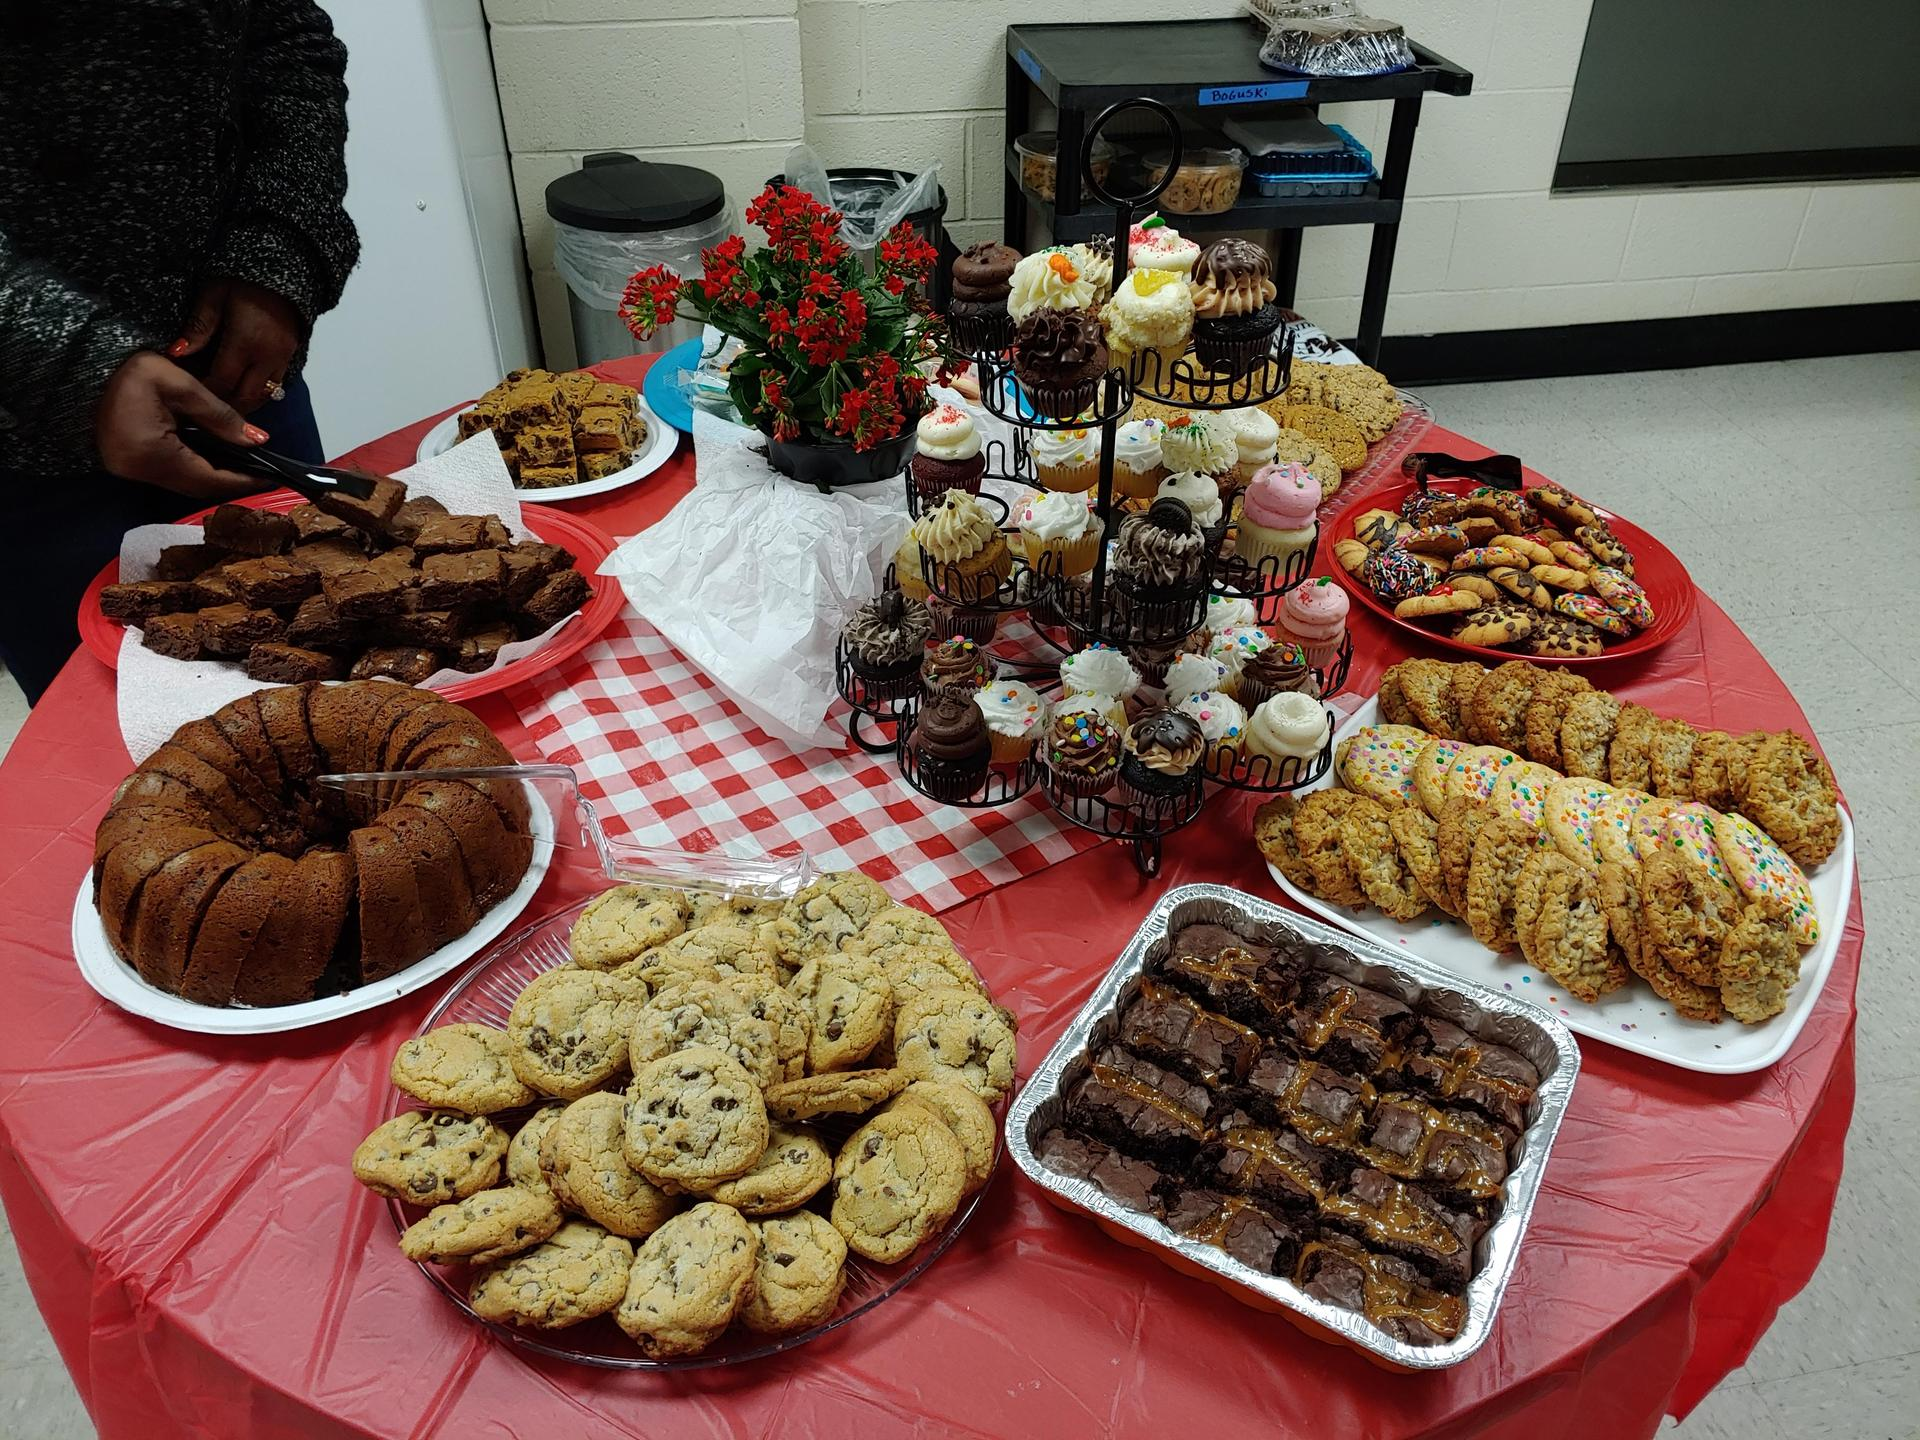 Welcoming in March - THANKS PARENTS FOR THE LUNCH